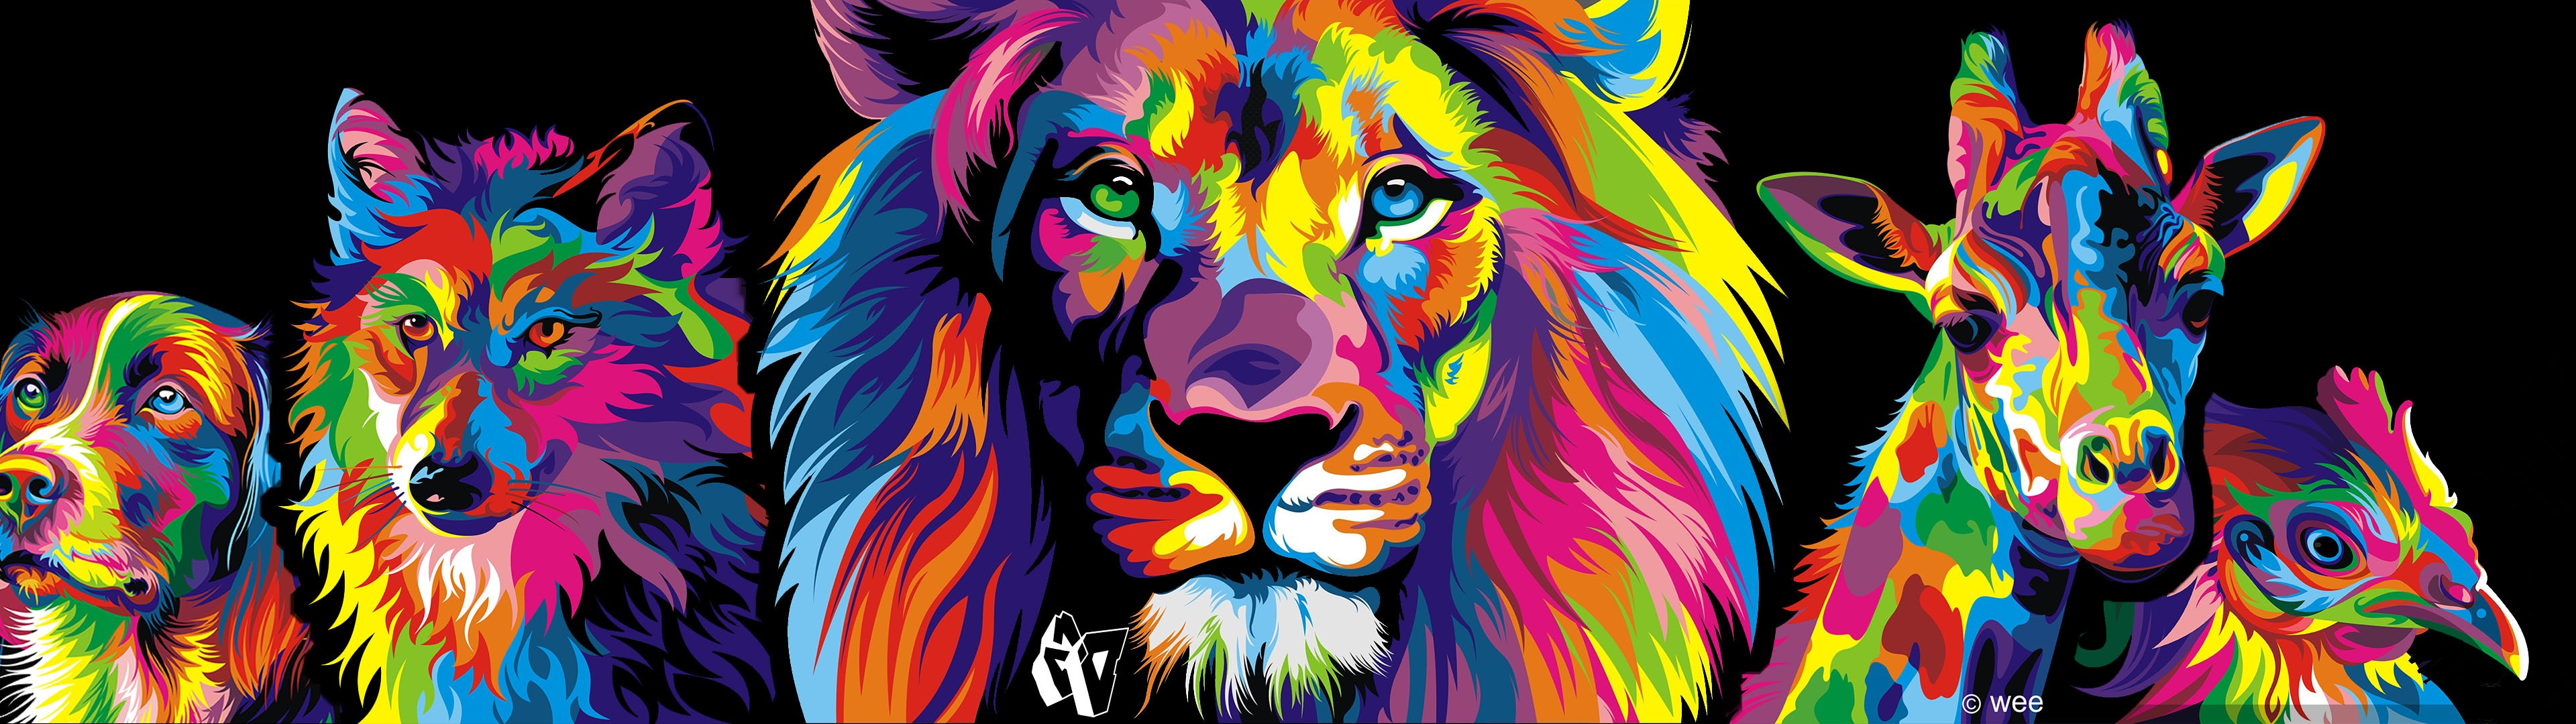 Old Iphone Wallpapers Download Colorful Lion Wallpaper Gallery